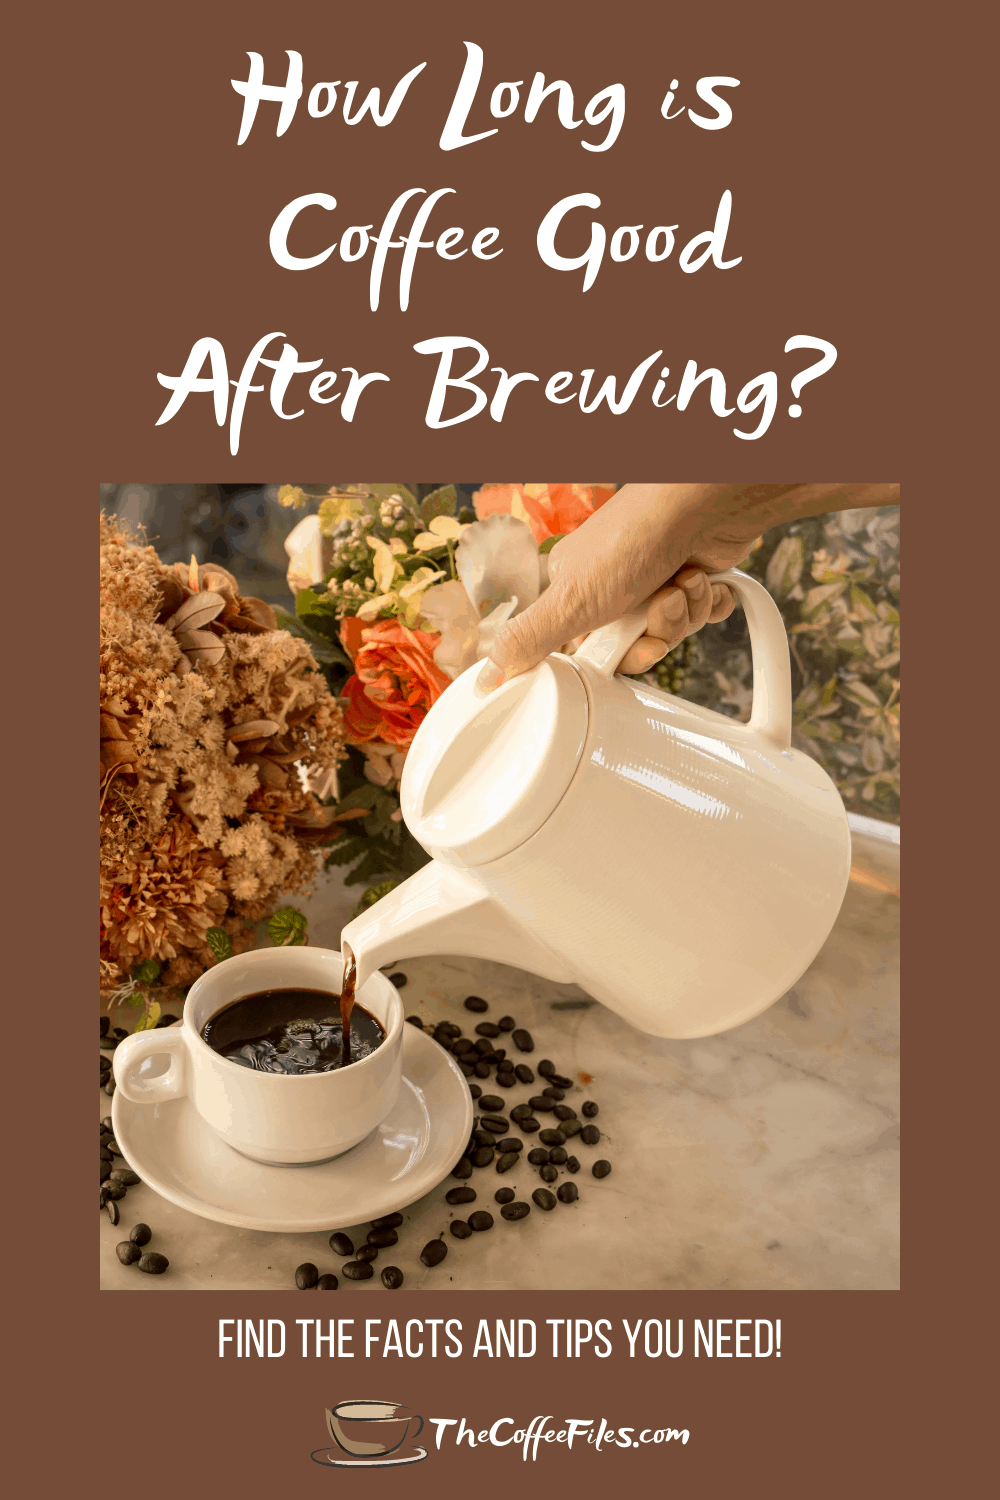 how long is coffee good after brewing?